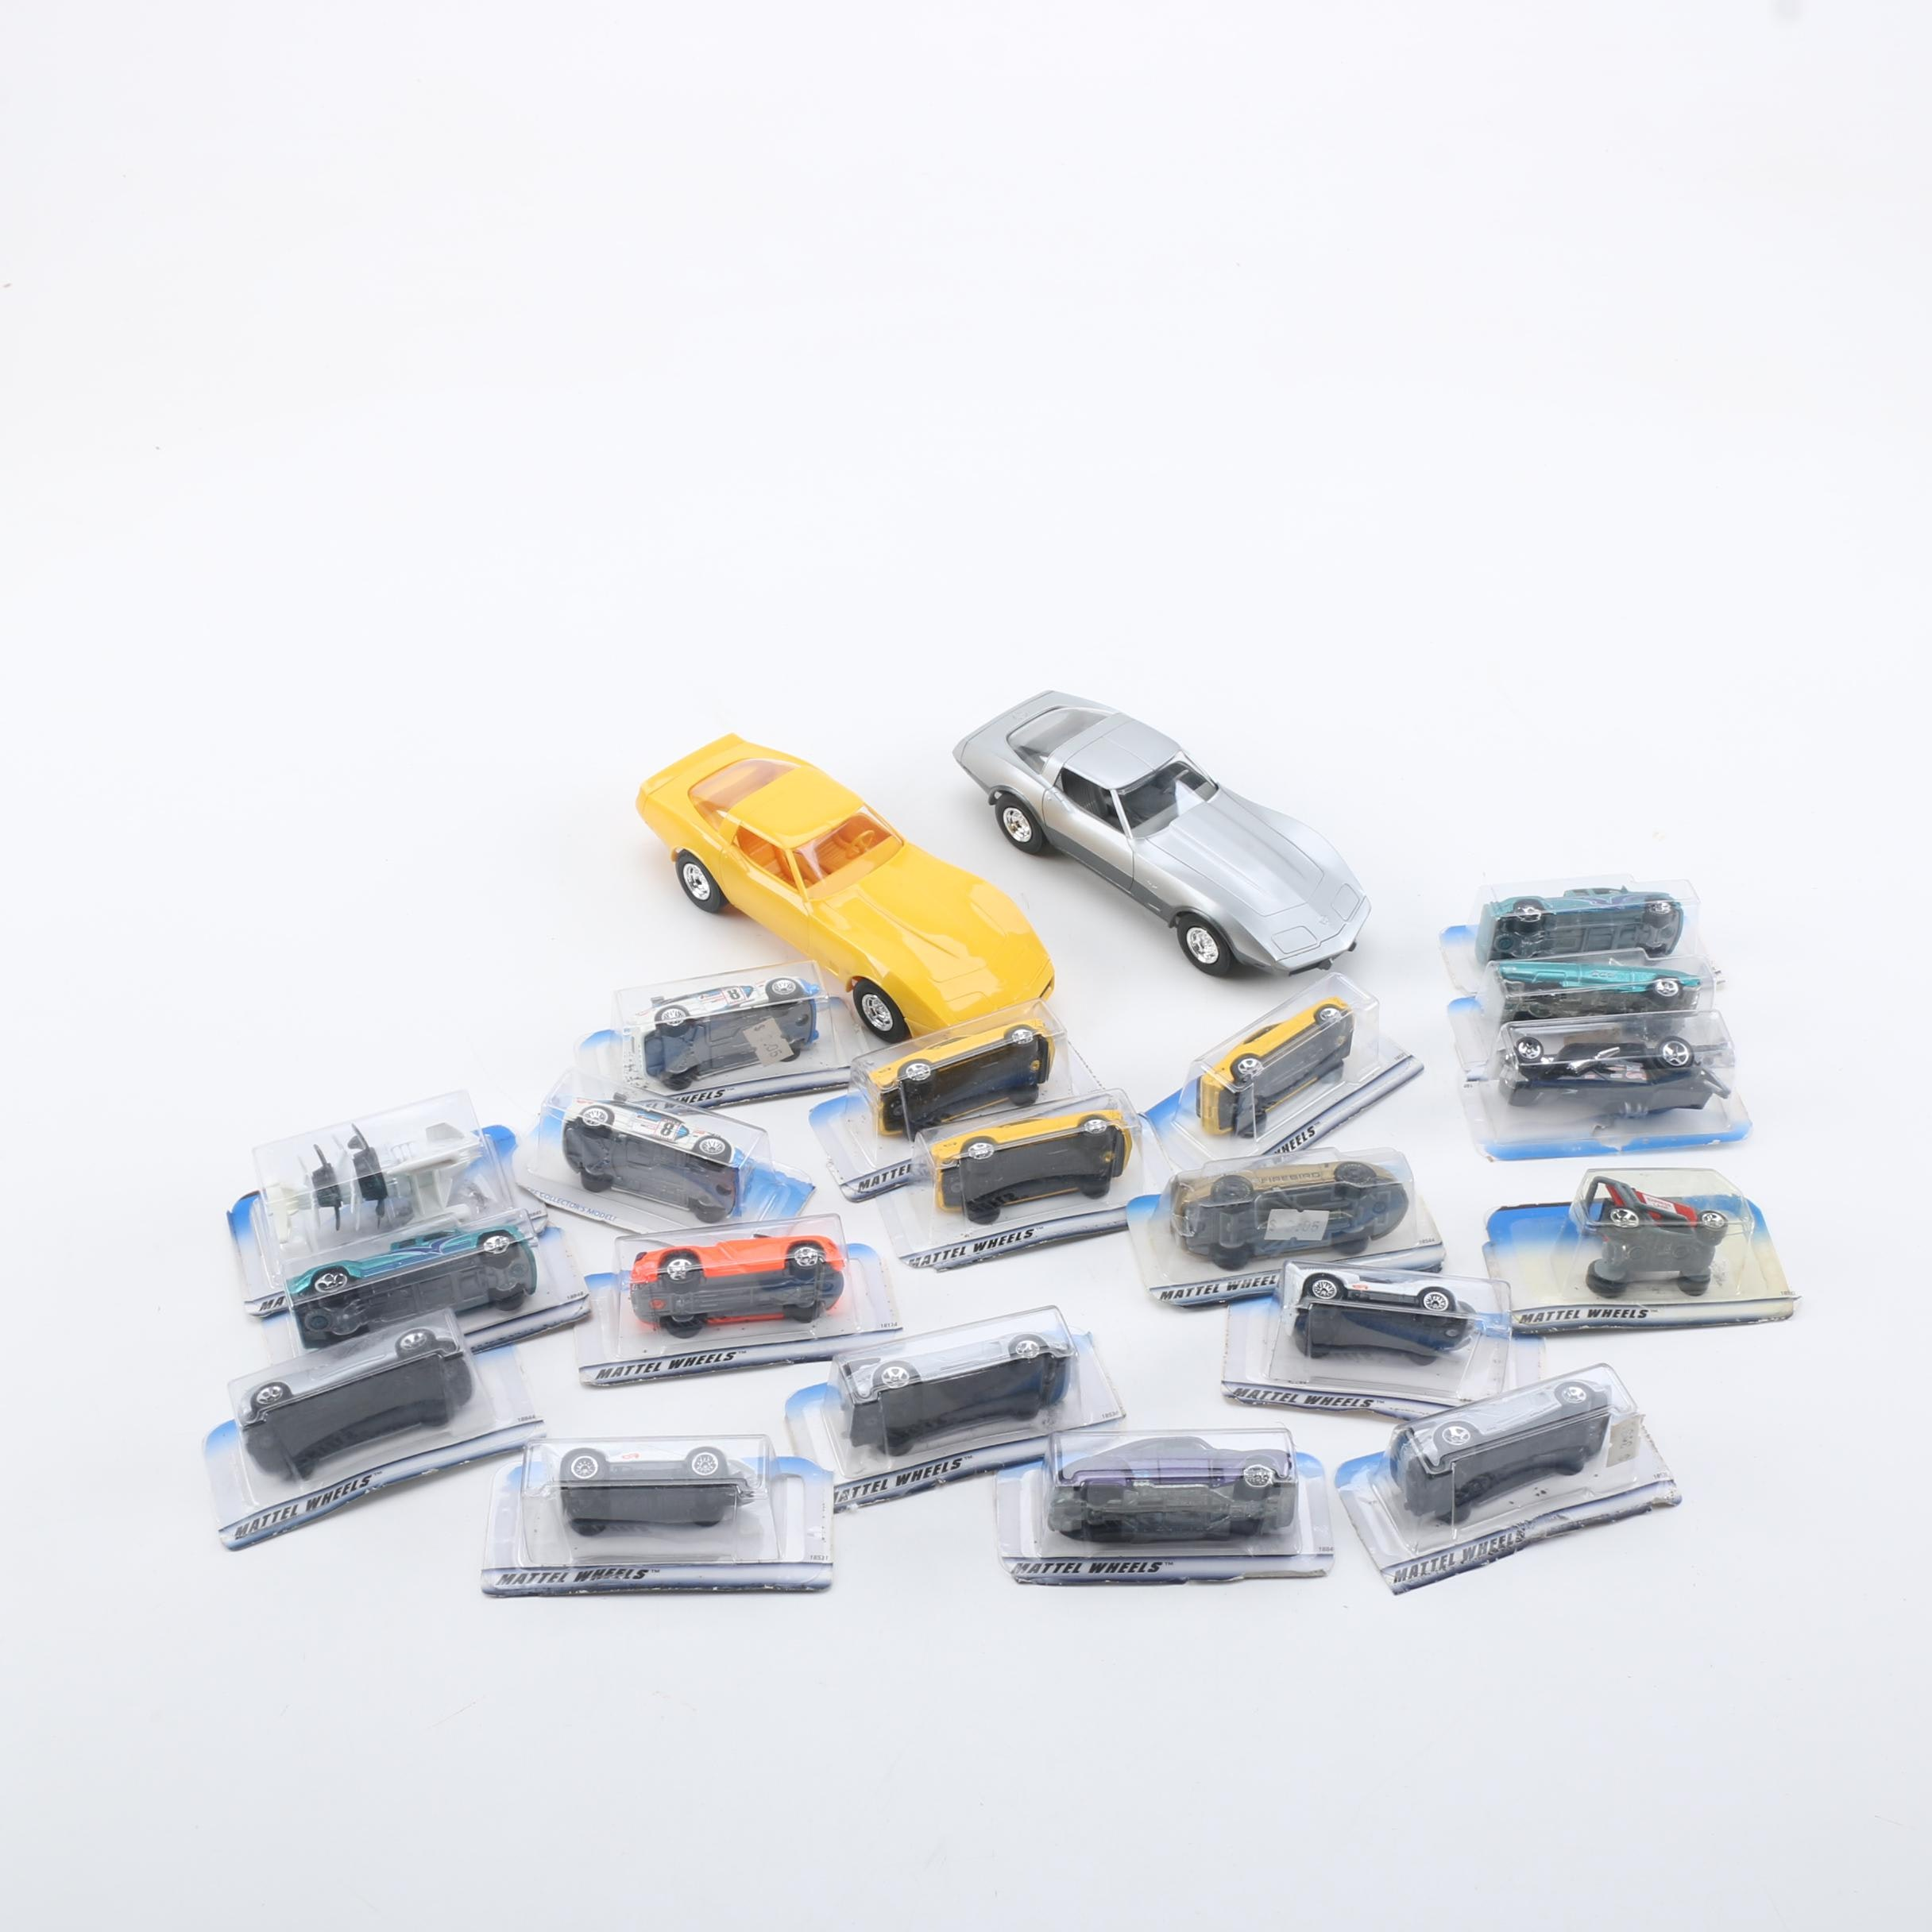 Assorted 1990s First Edition Hot Wheels and Pair of Corvette Promo Cars